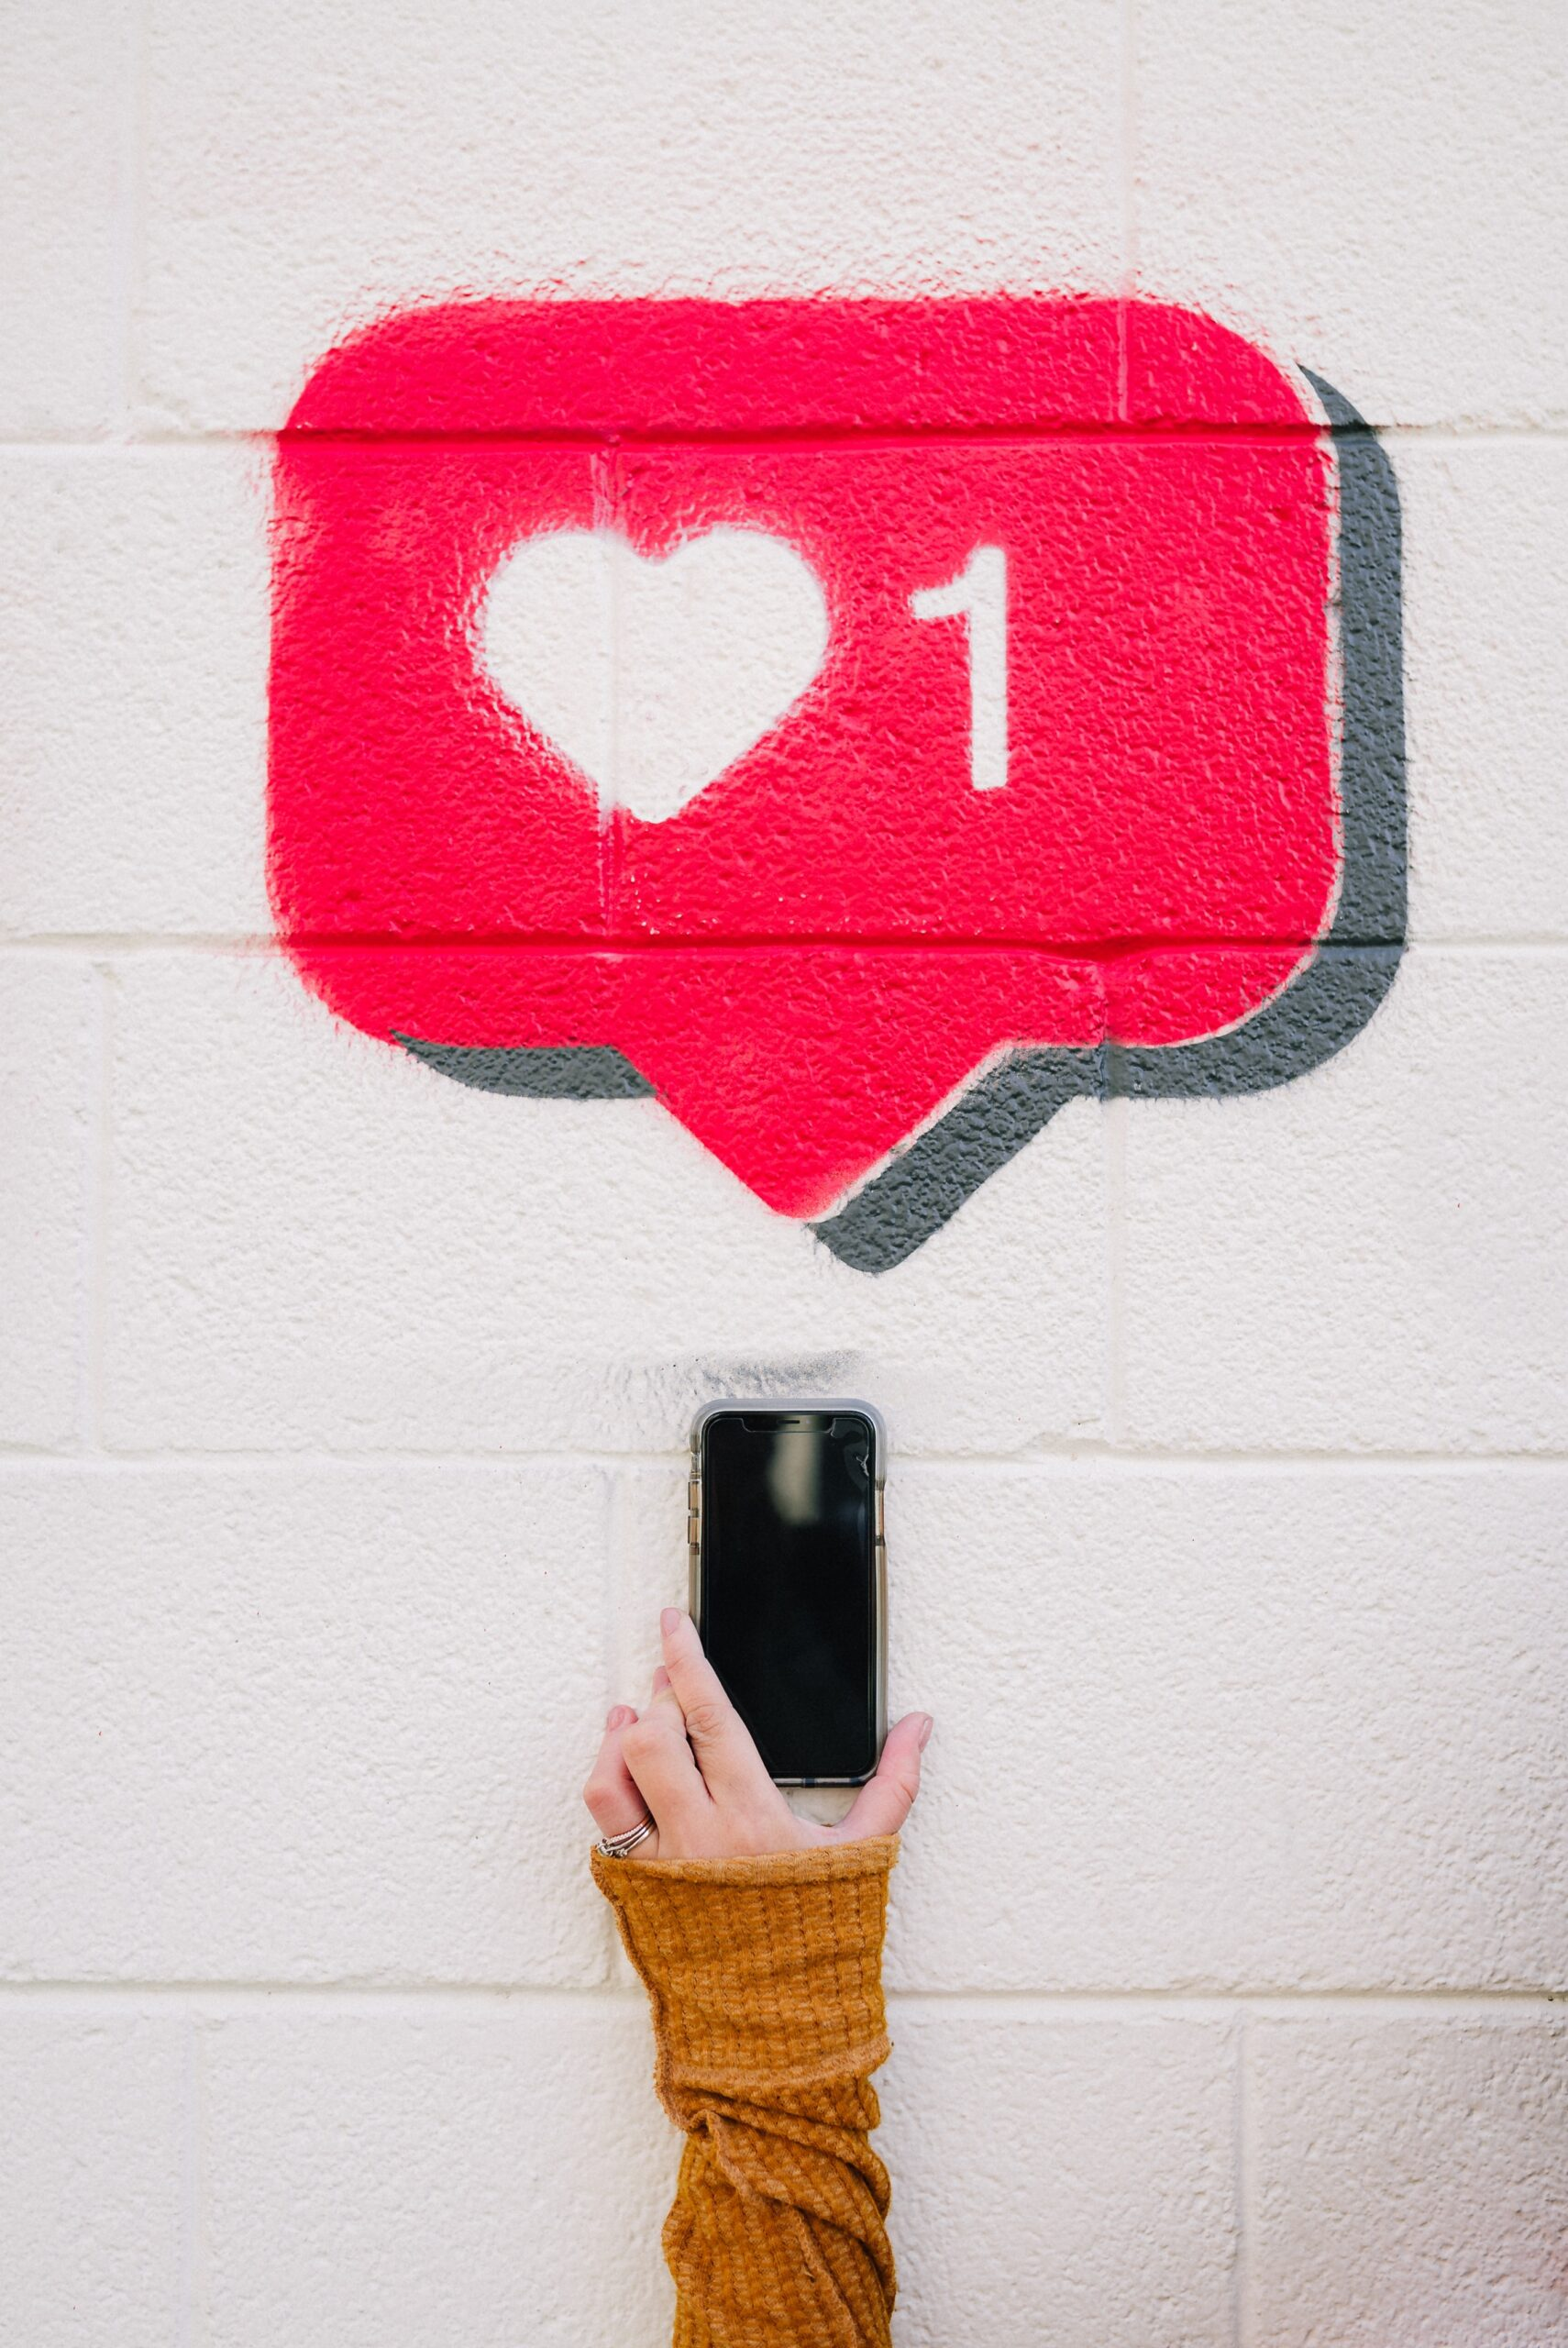 A woman holds a phone up to a white wall where 1 like is drawn on in chalk